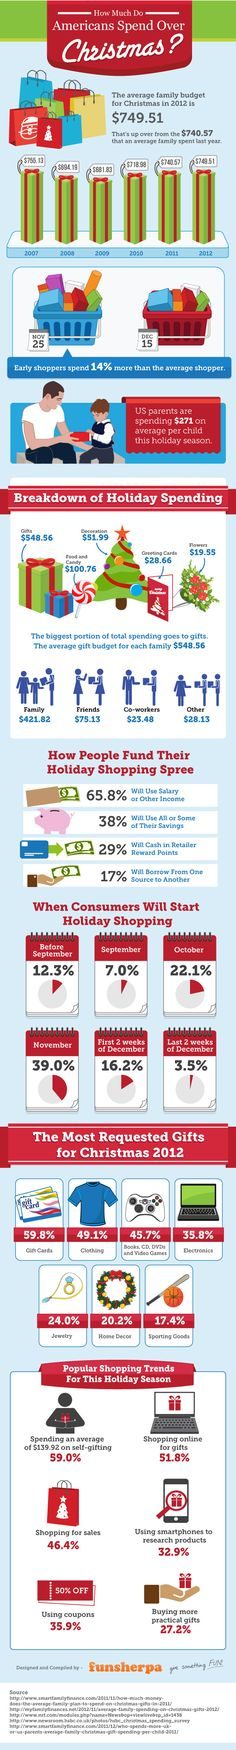 The Amount Americans Spend on Christmas - The folks at Funsherpa put together this infographic that takes a look at how much Americans spend during the Christmas holiday.